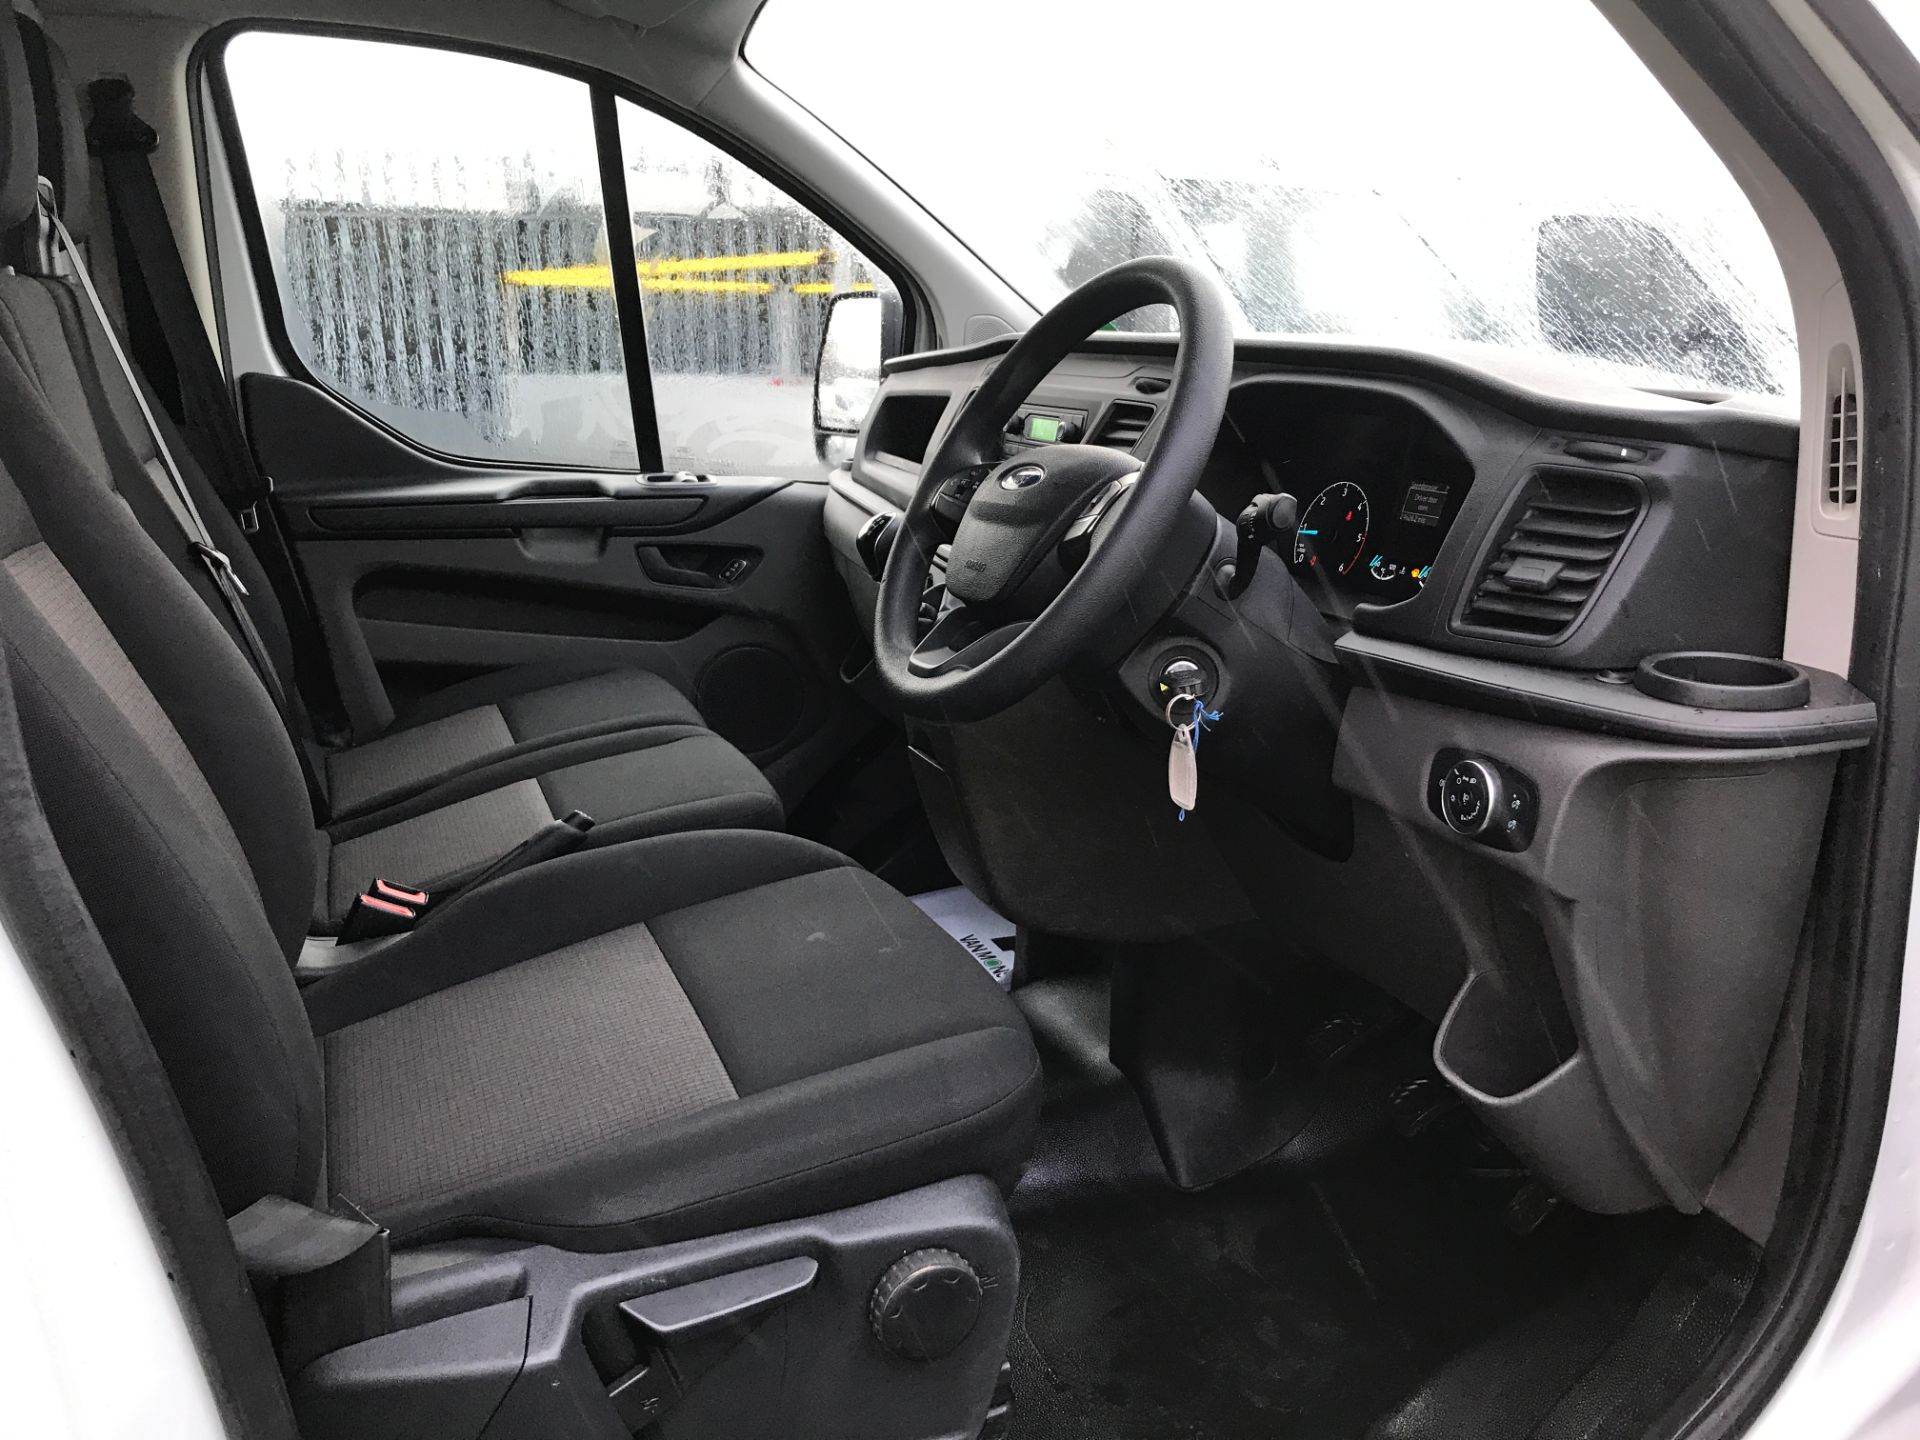 2018 Ford Transit Custom 300 L1 2.0TDCI 105PS LOW ROOF EURO 6 (FP18AZT) Image 3